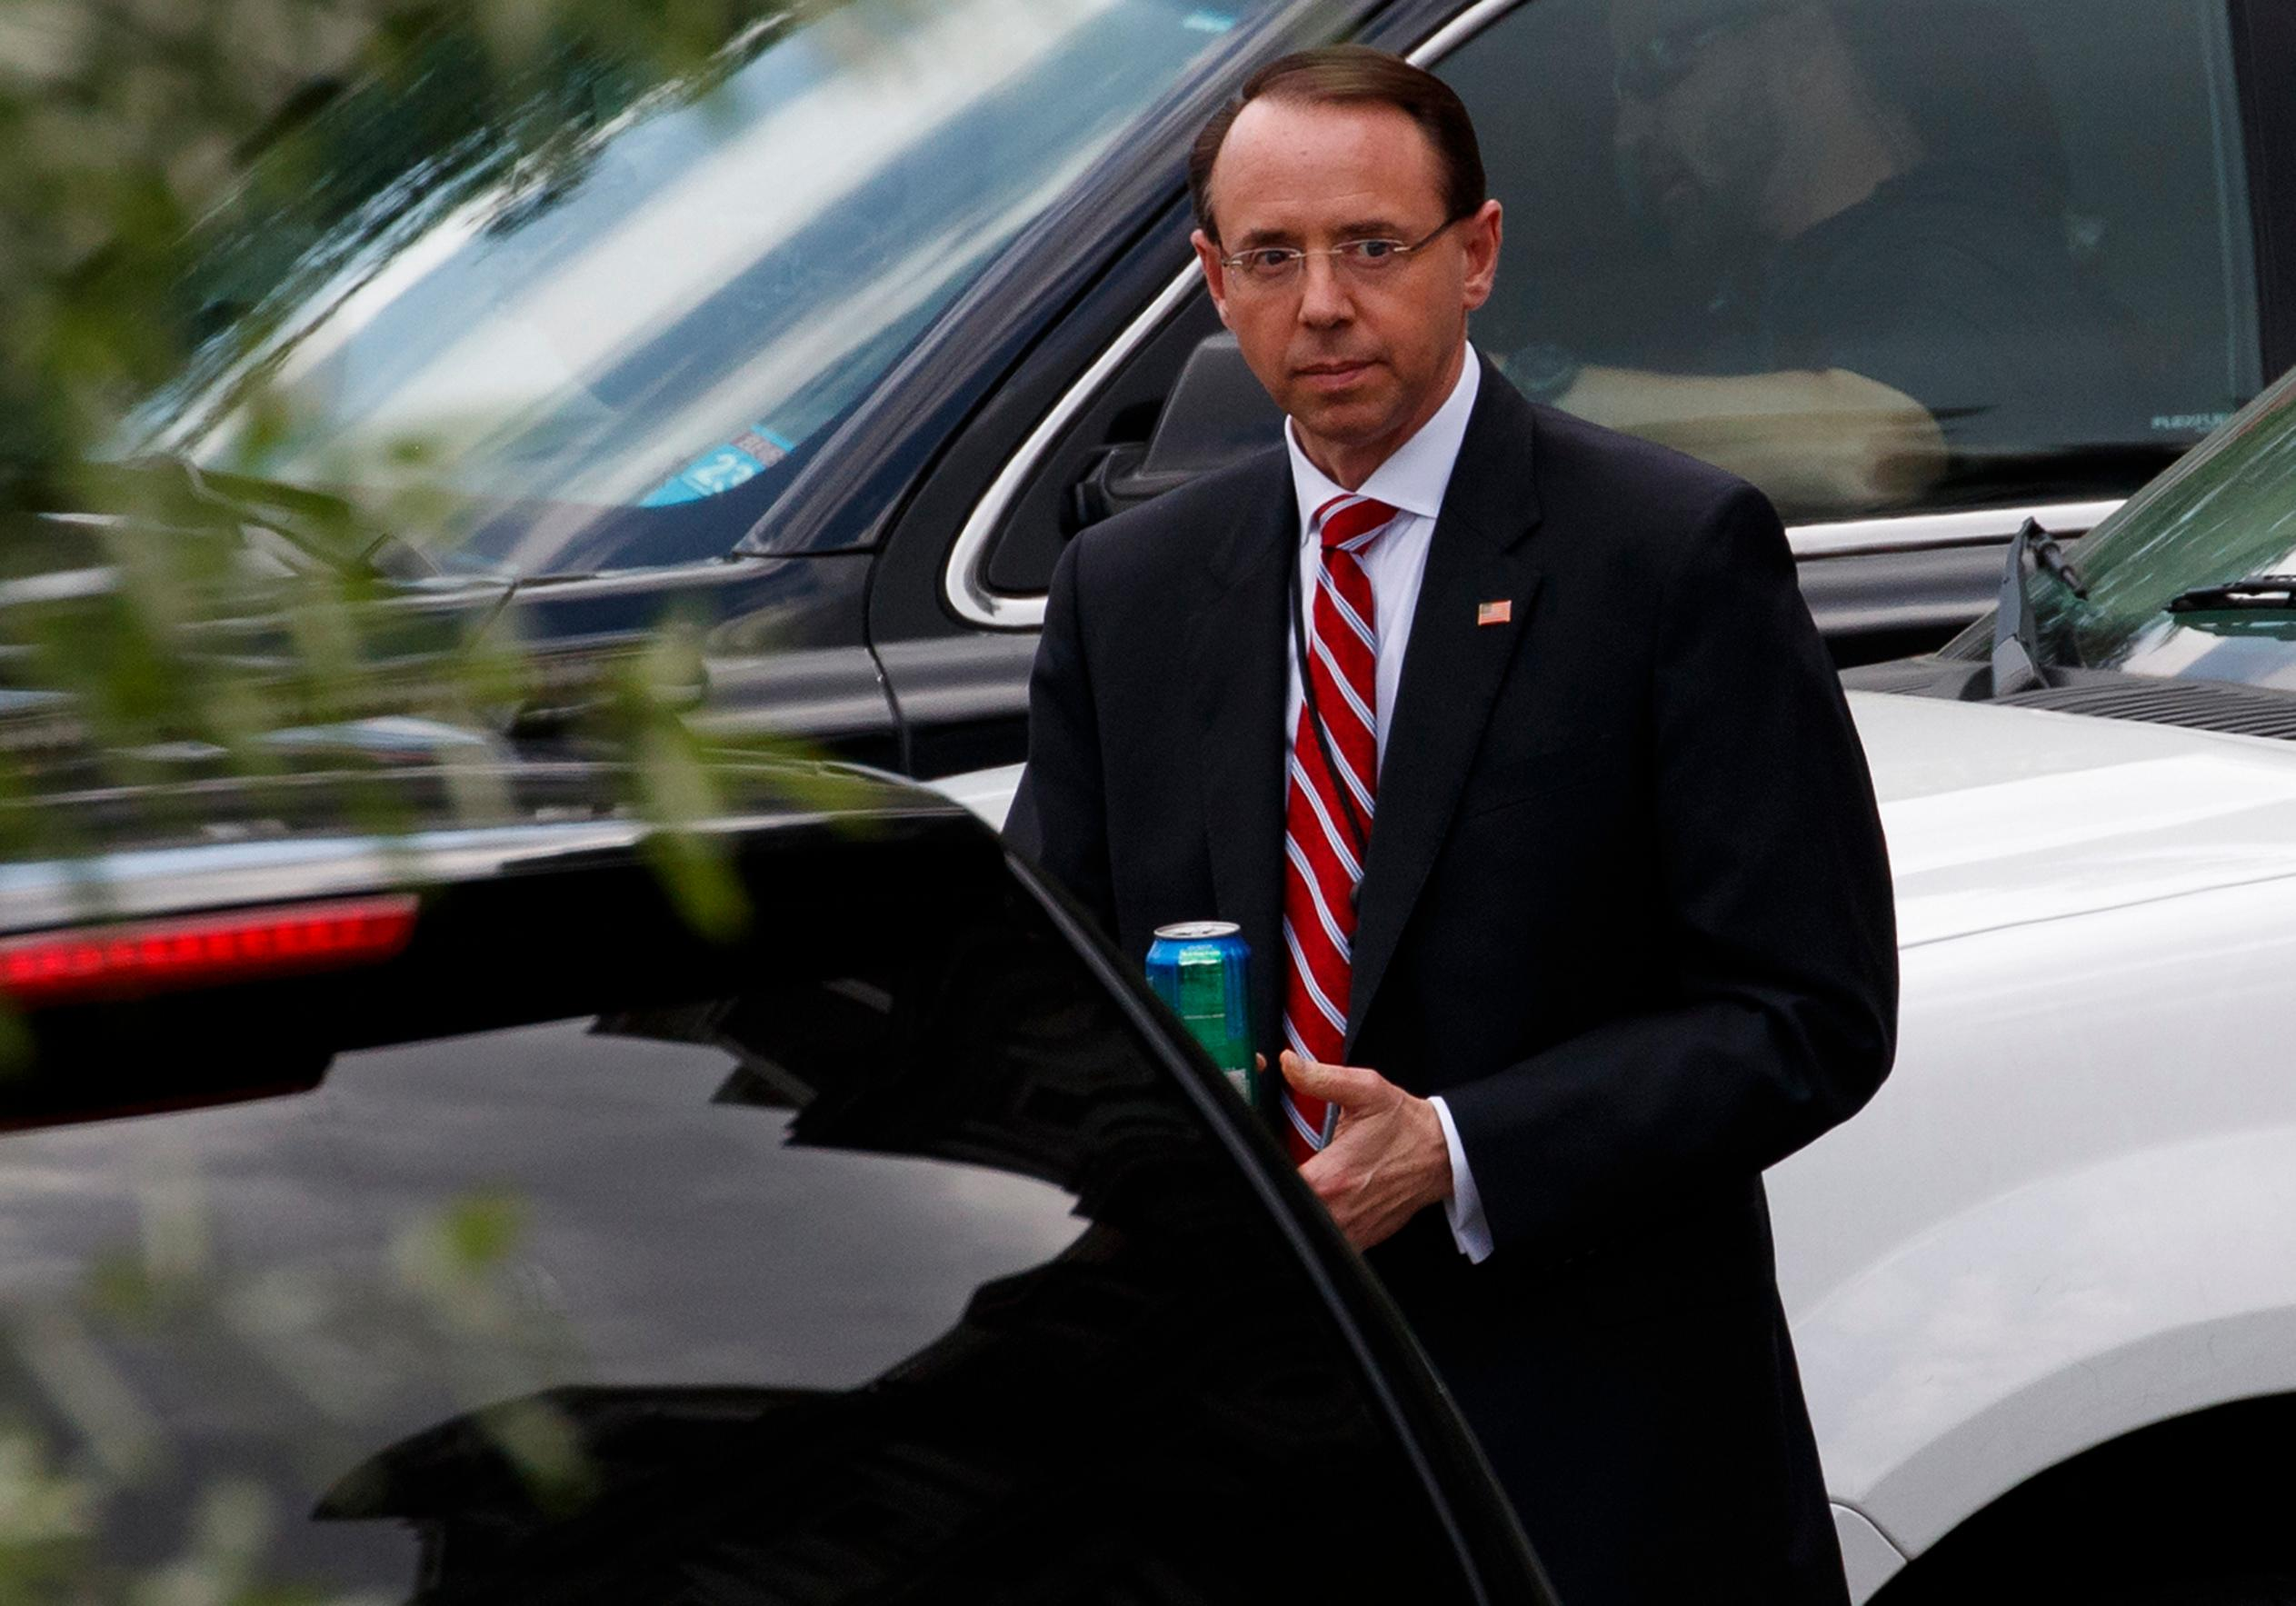 Deputy Attorney General Rod Rosenstein leaves the White House, Monday, May 21, 2018, in Washington. (AP Photo/Evan Vucci)